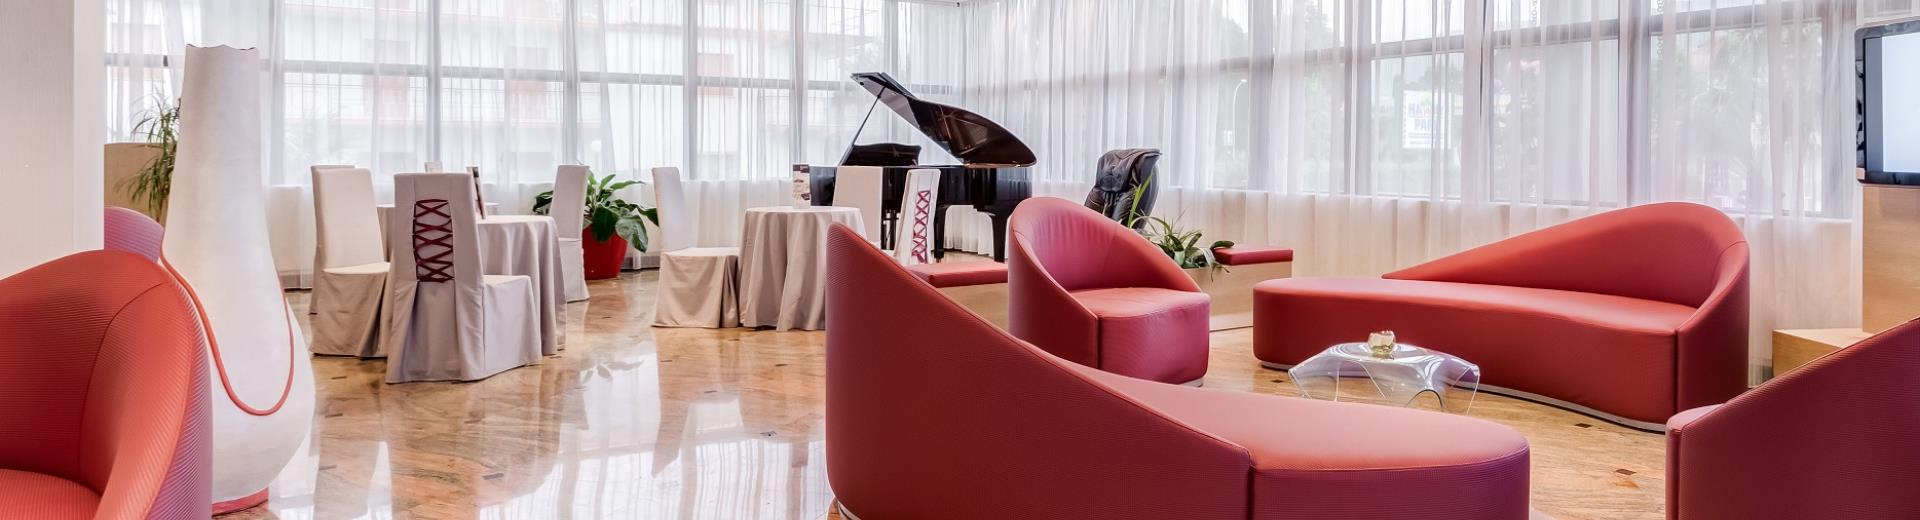 Services and amenities at the BW Hotel Rocca Cassino